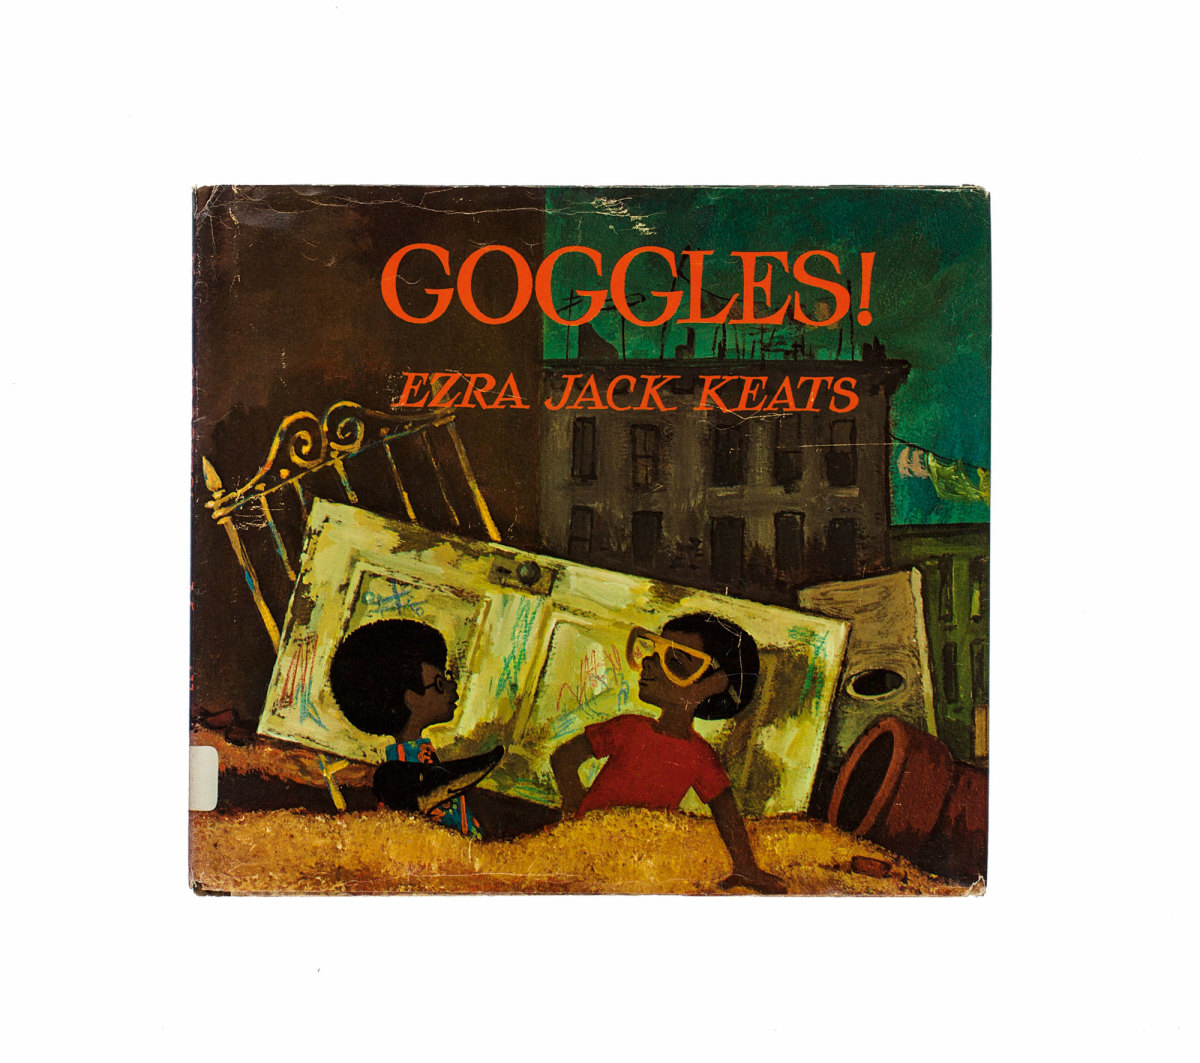 Goggles by Ezra Jack Keats tells another story about Peter.